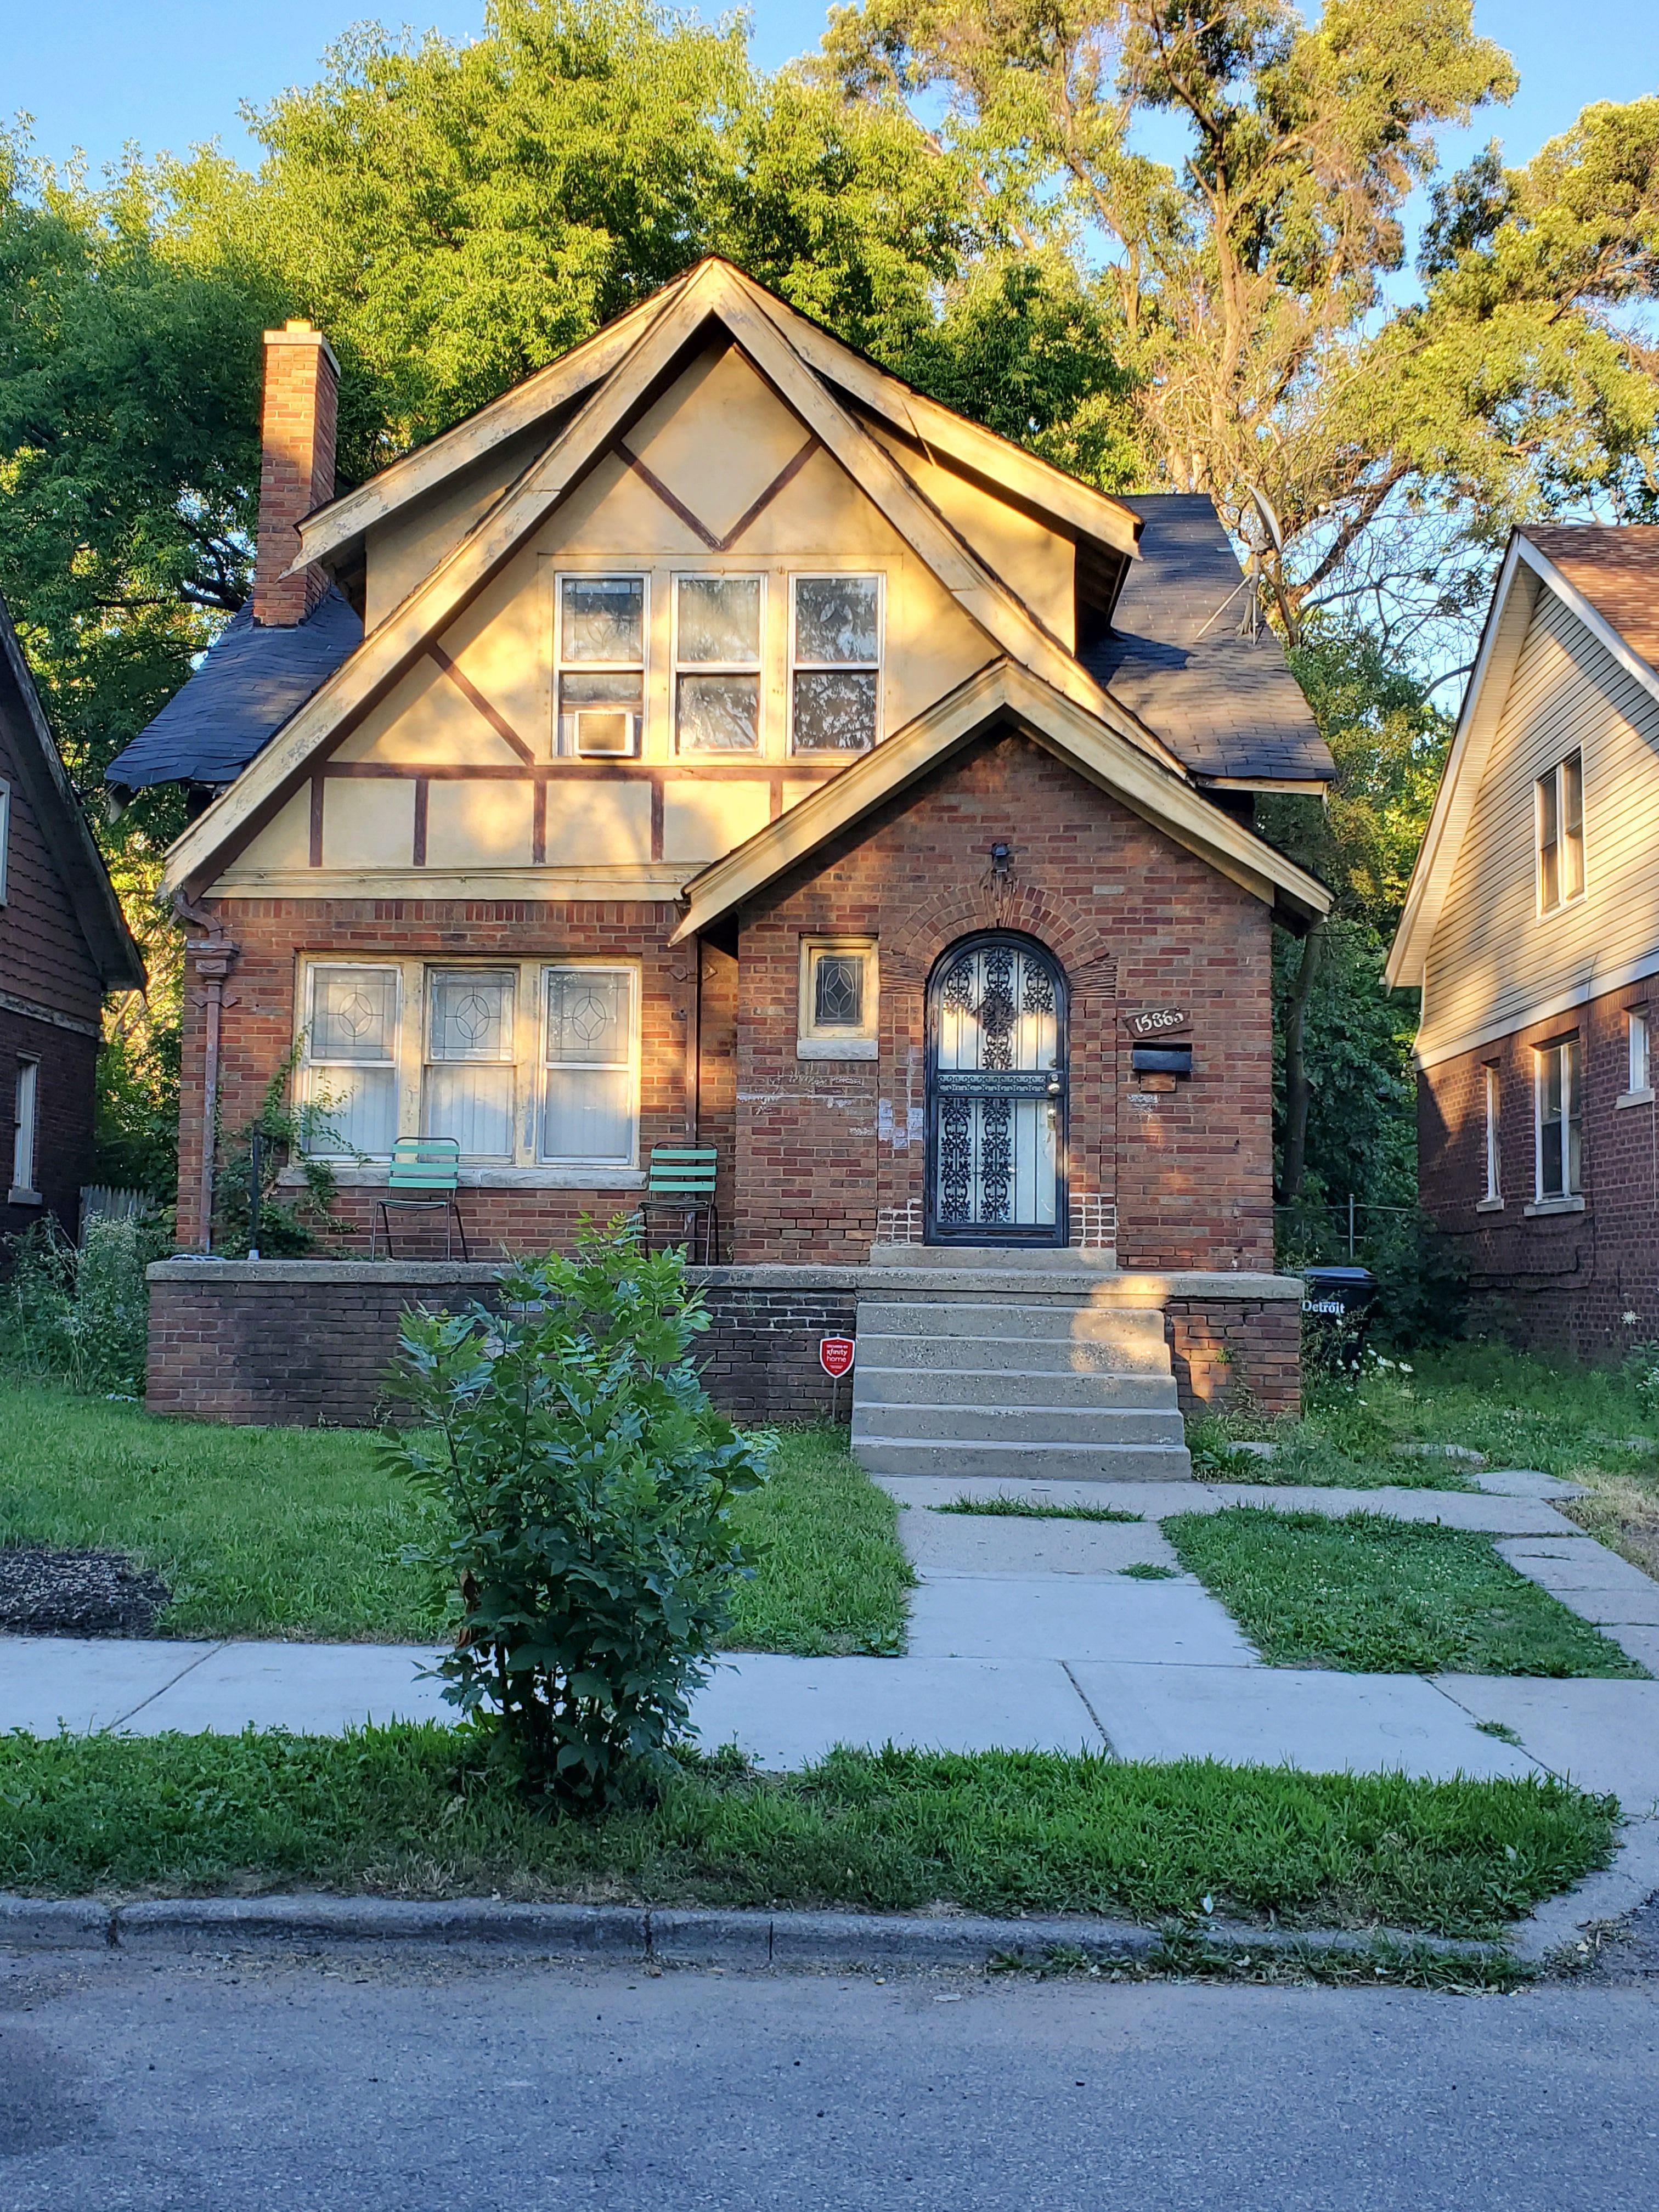 15866 Kentucky St, Detroit, MI